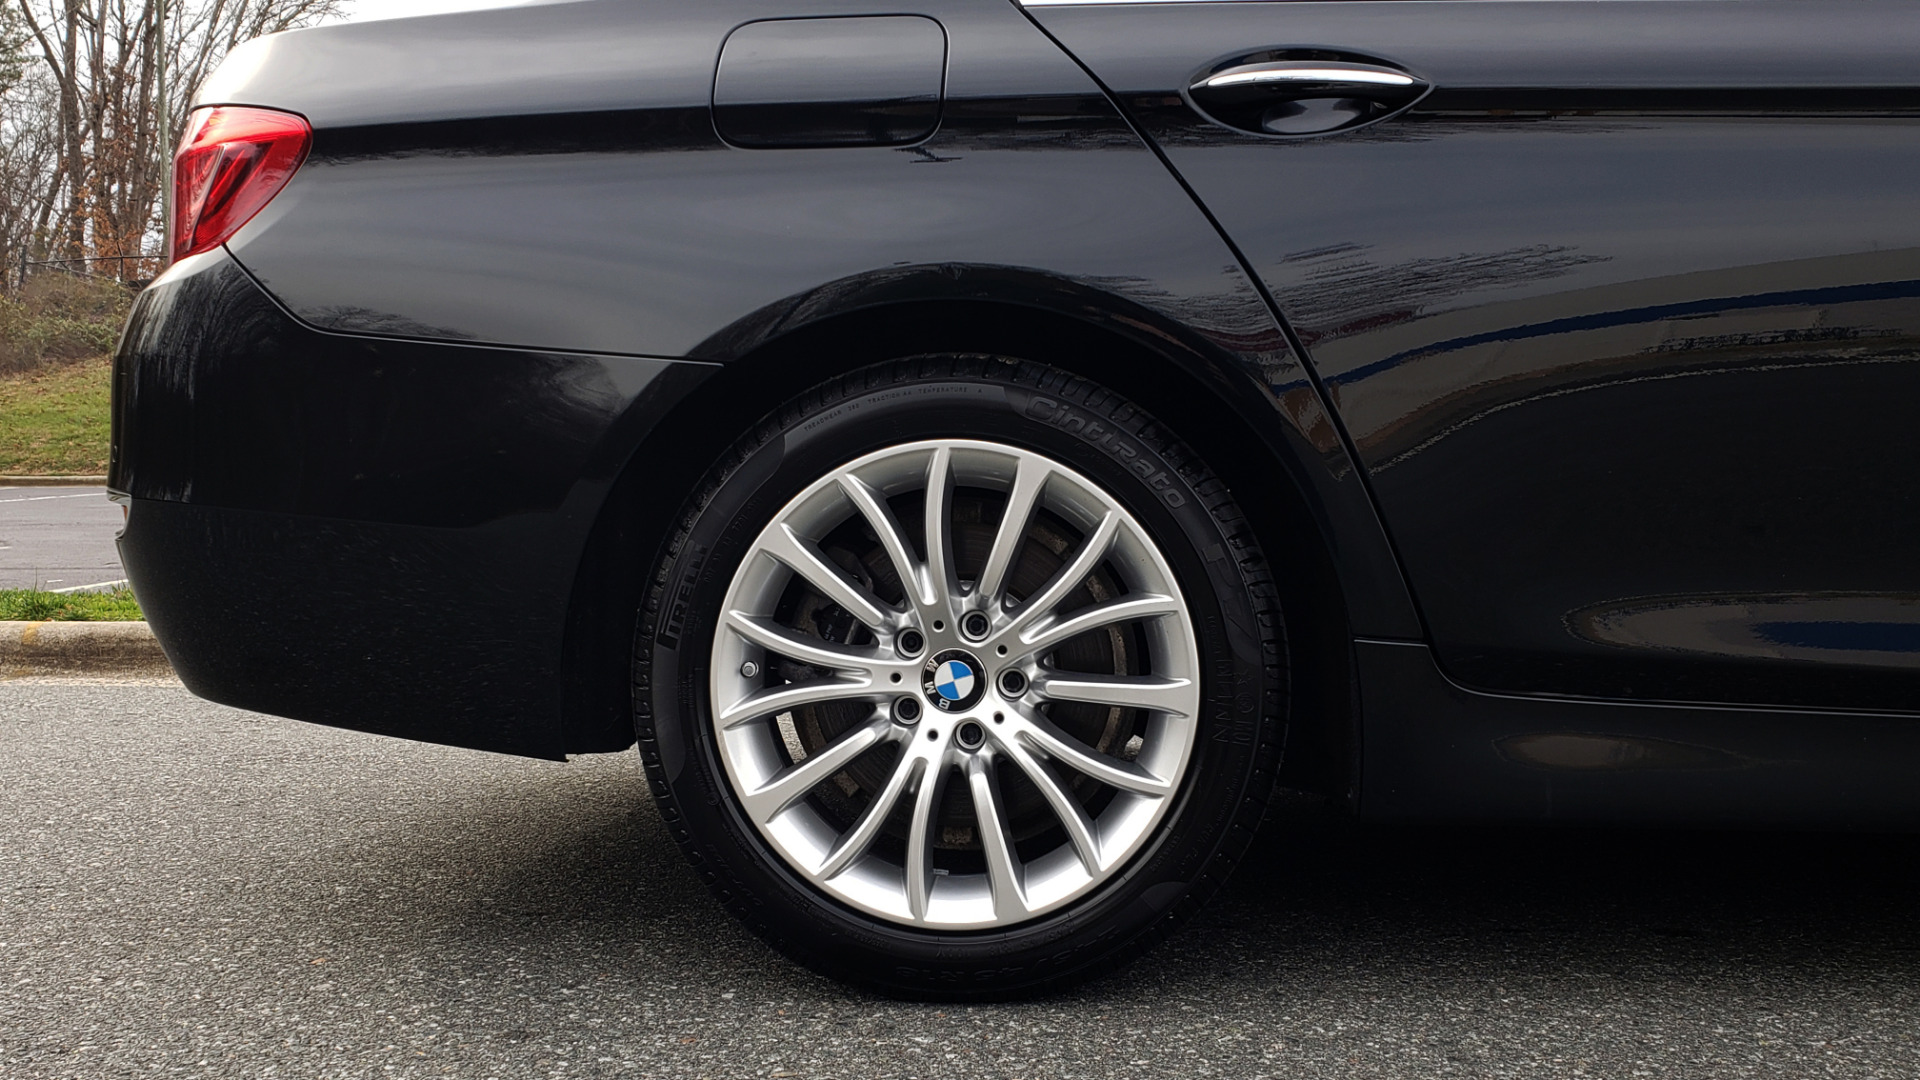 Used 2016 BMW 5 SERIES 528i XDRIVE / PREM PKG / DRVR ASST PLUS / LUXURY / COLD WTHR for sale Sold at Formula Imports in Charlotte NC 28227 12